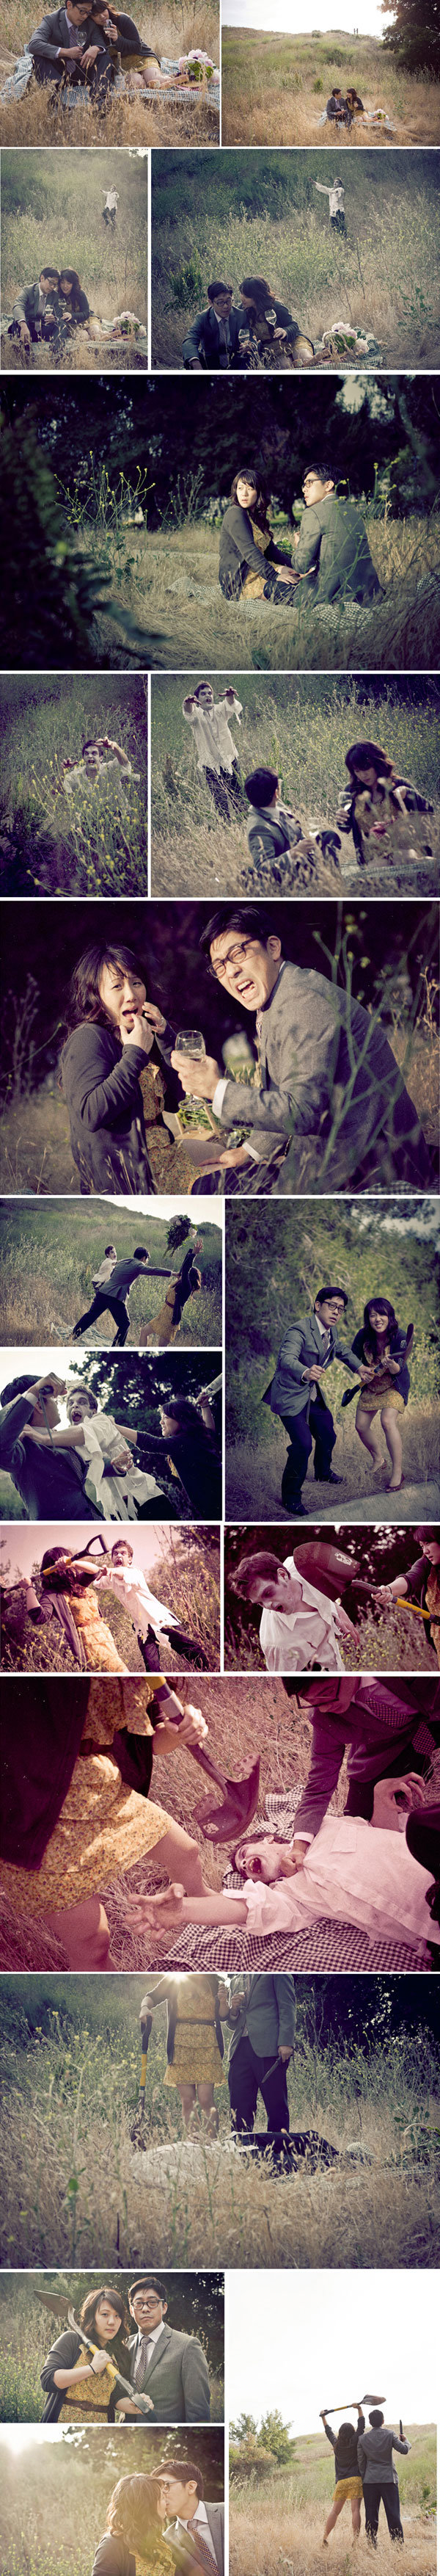 zombie engagement photos